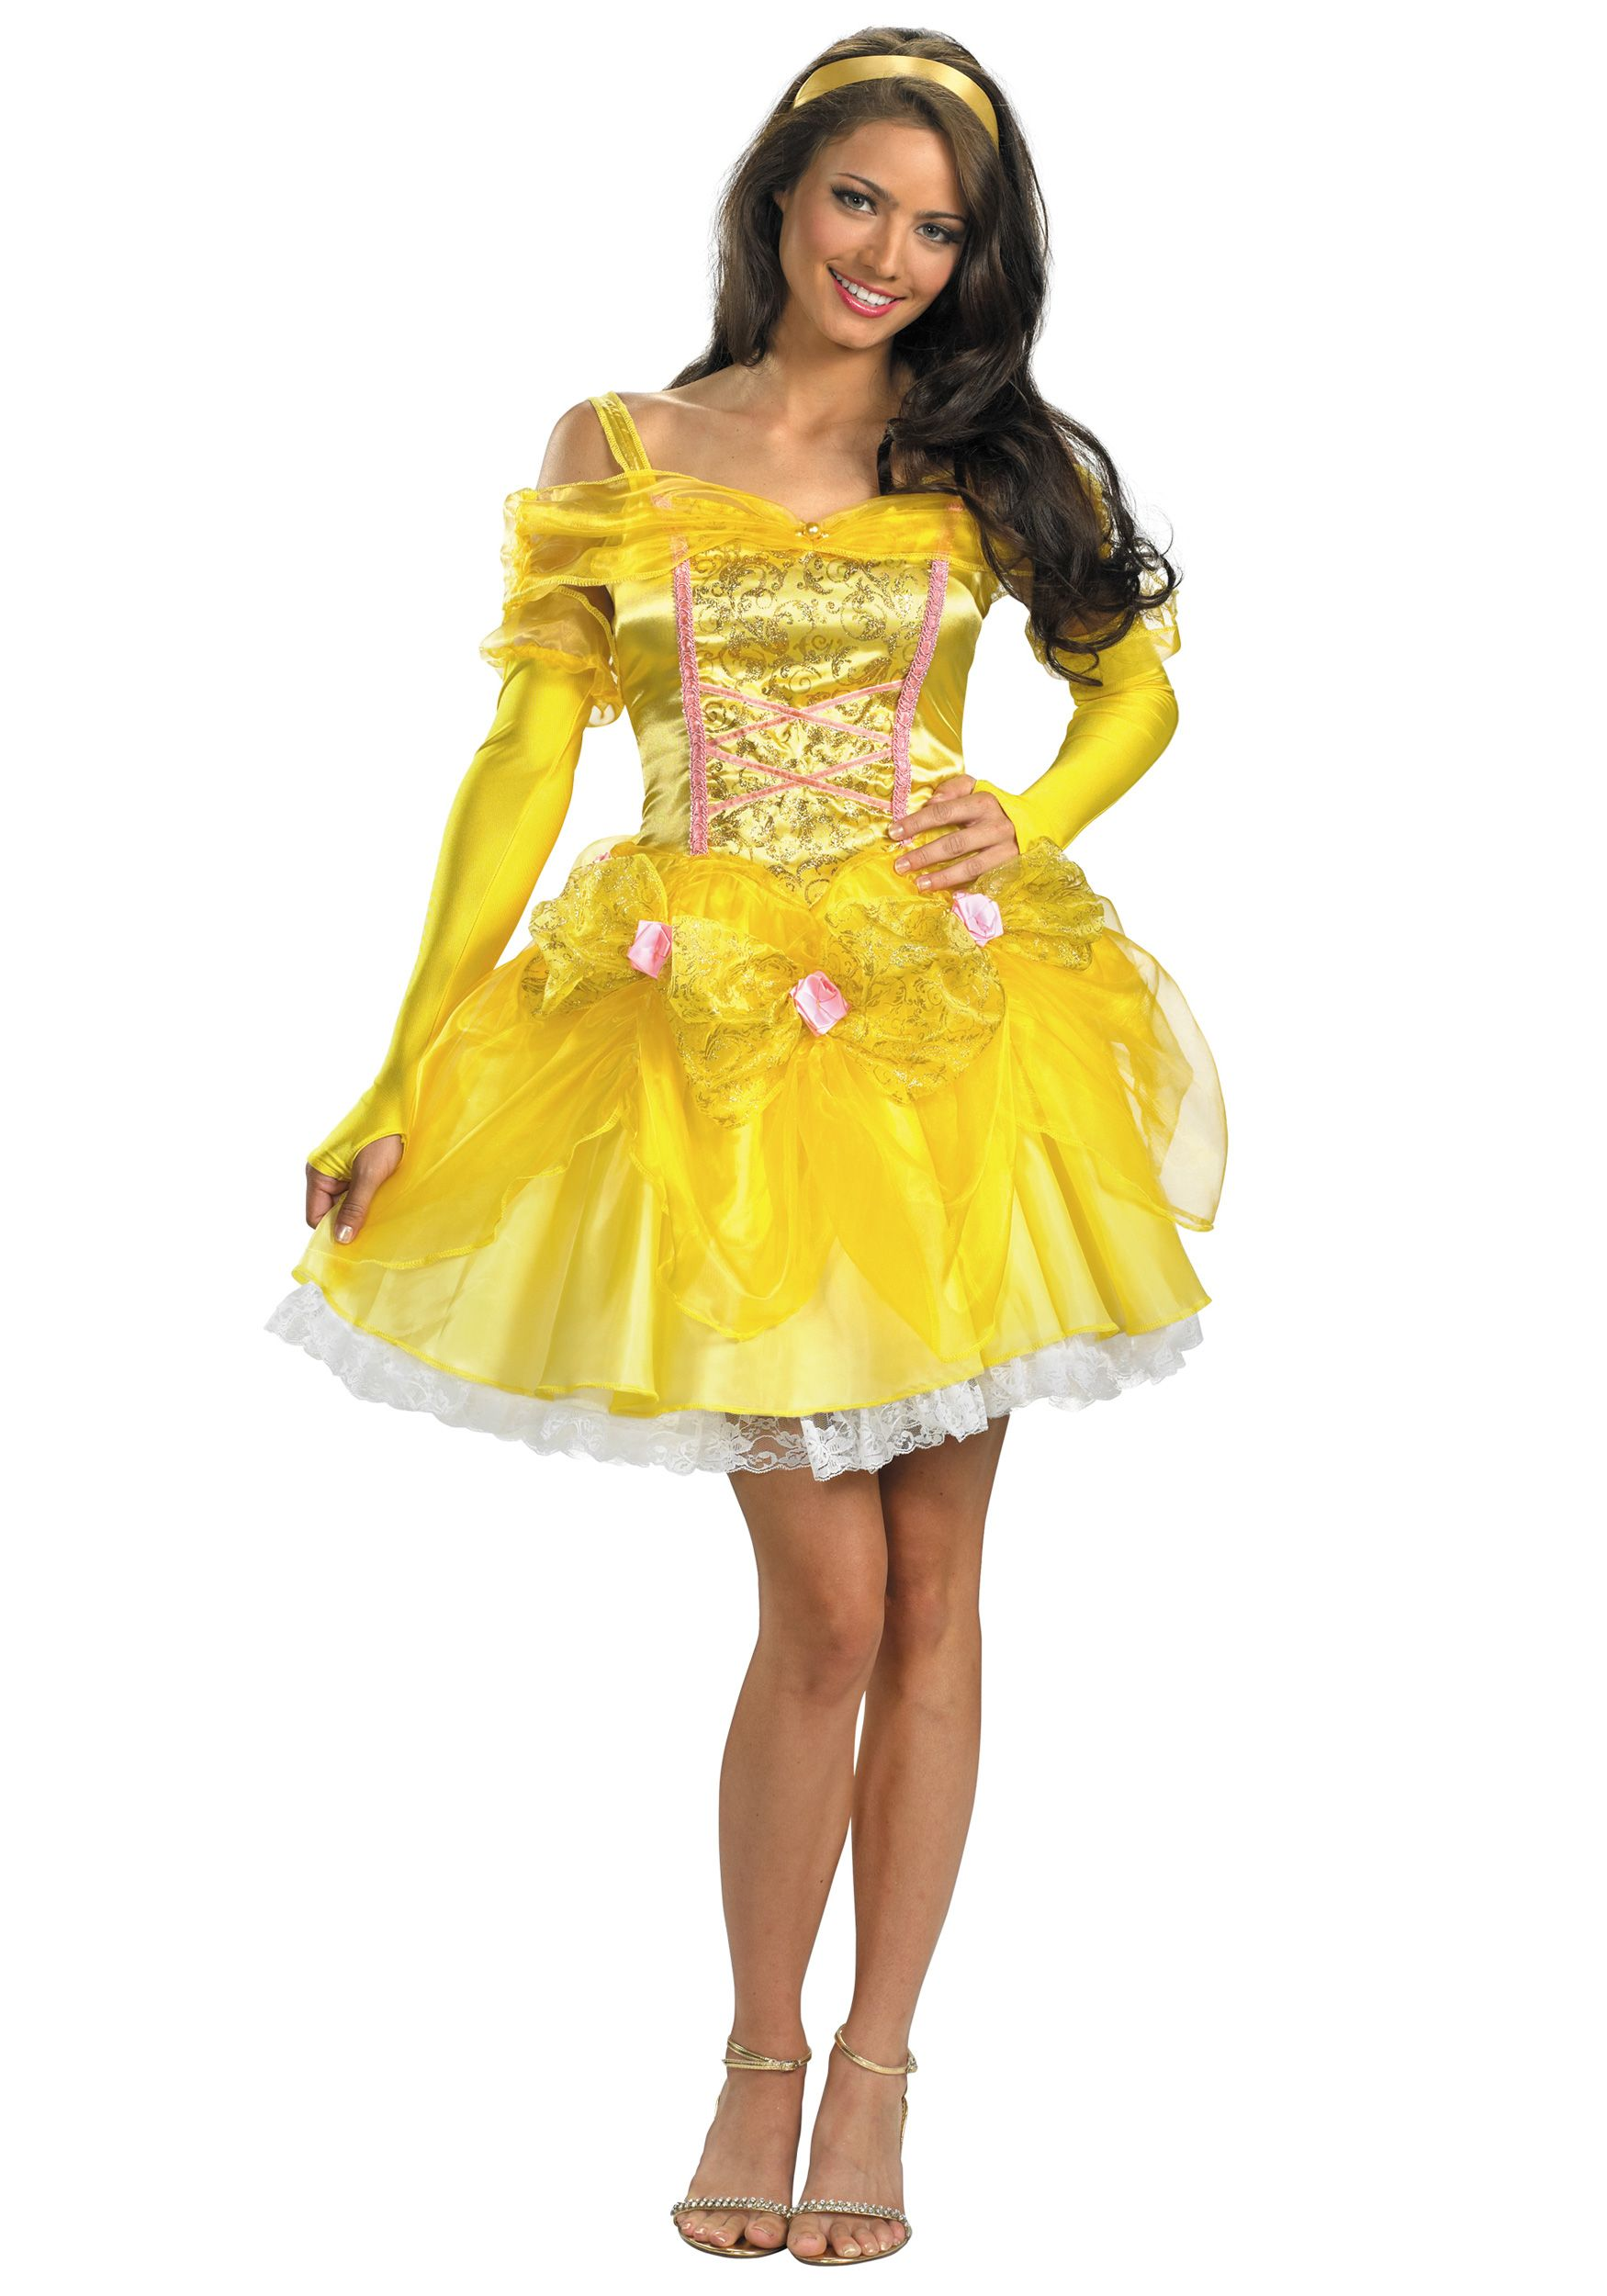 994343fc2a9690 Sexy Princess Belle Costume. Sexy Princess Belle Costume Disney Beauty And  The Beast, Disney Cosplay, Princess Costumes,